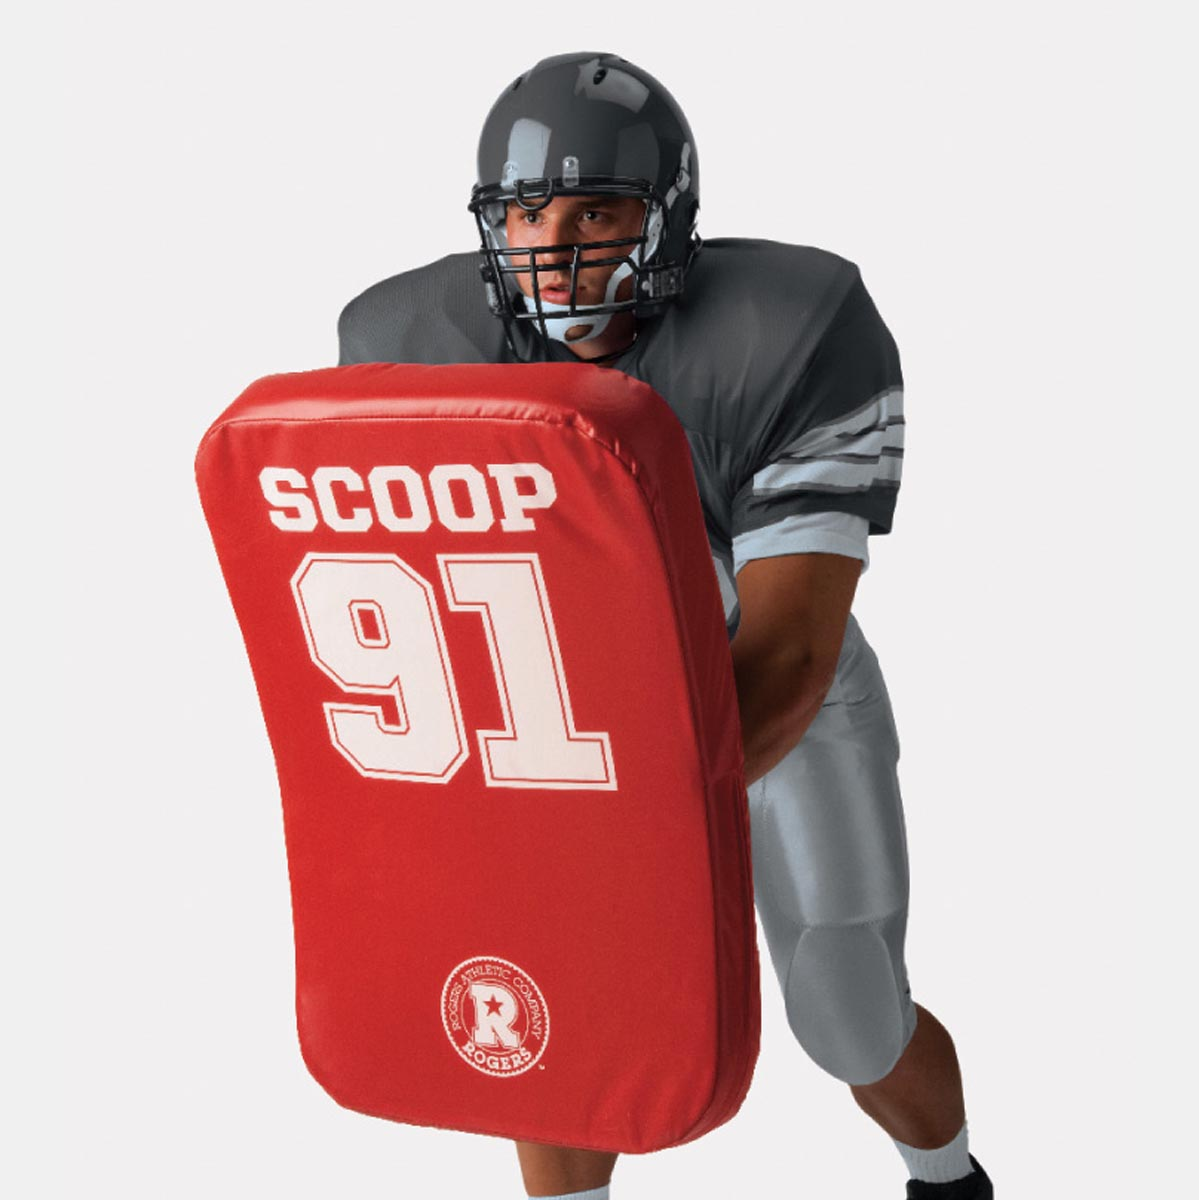 football shields - scoop